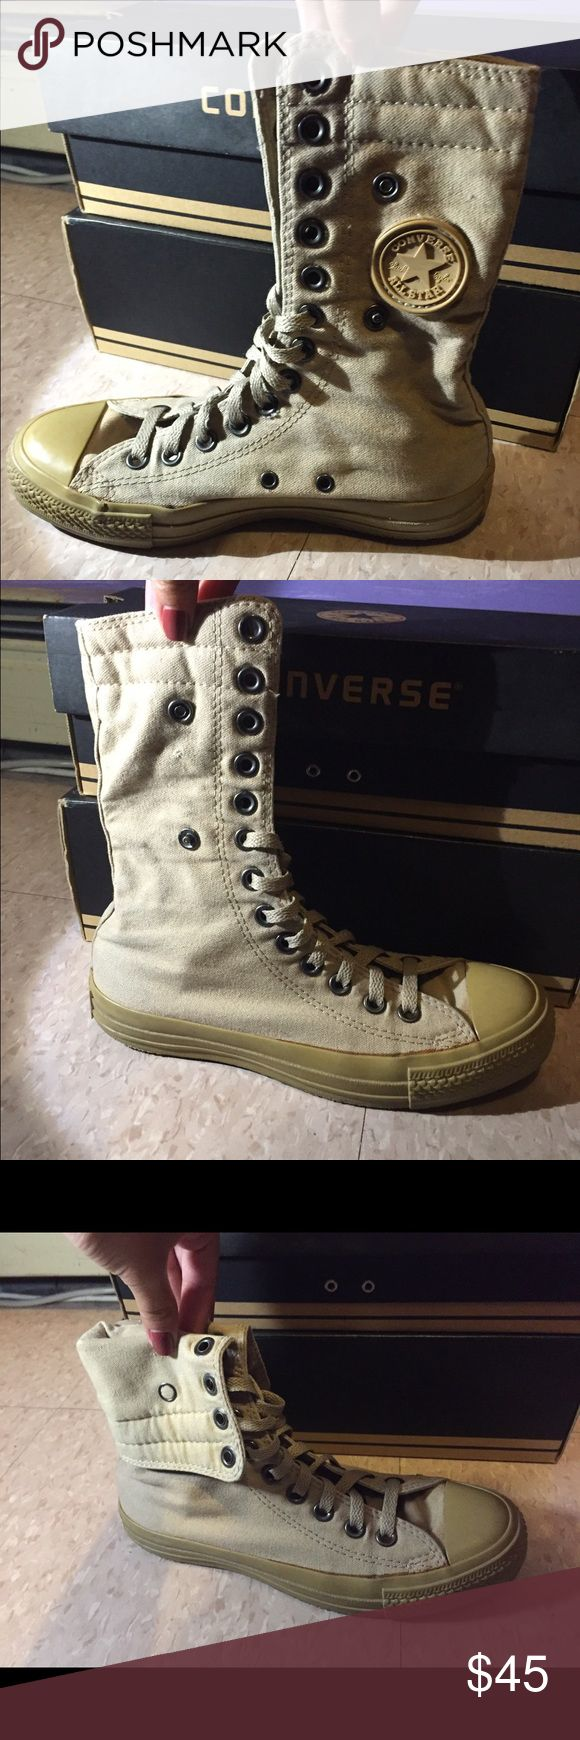 Tan hi top Converse Tan high top Converse, well loved but still have so much use left in them. They can be used as regular high tops by turning the flaps over and snapping them in place with the buttons on the left and right. They do have some wear at the bottom but are otherwise in good condition. Make an offer! (Size is a mens 4, women's 6) Converse Shoes Sneakers